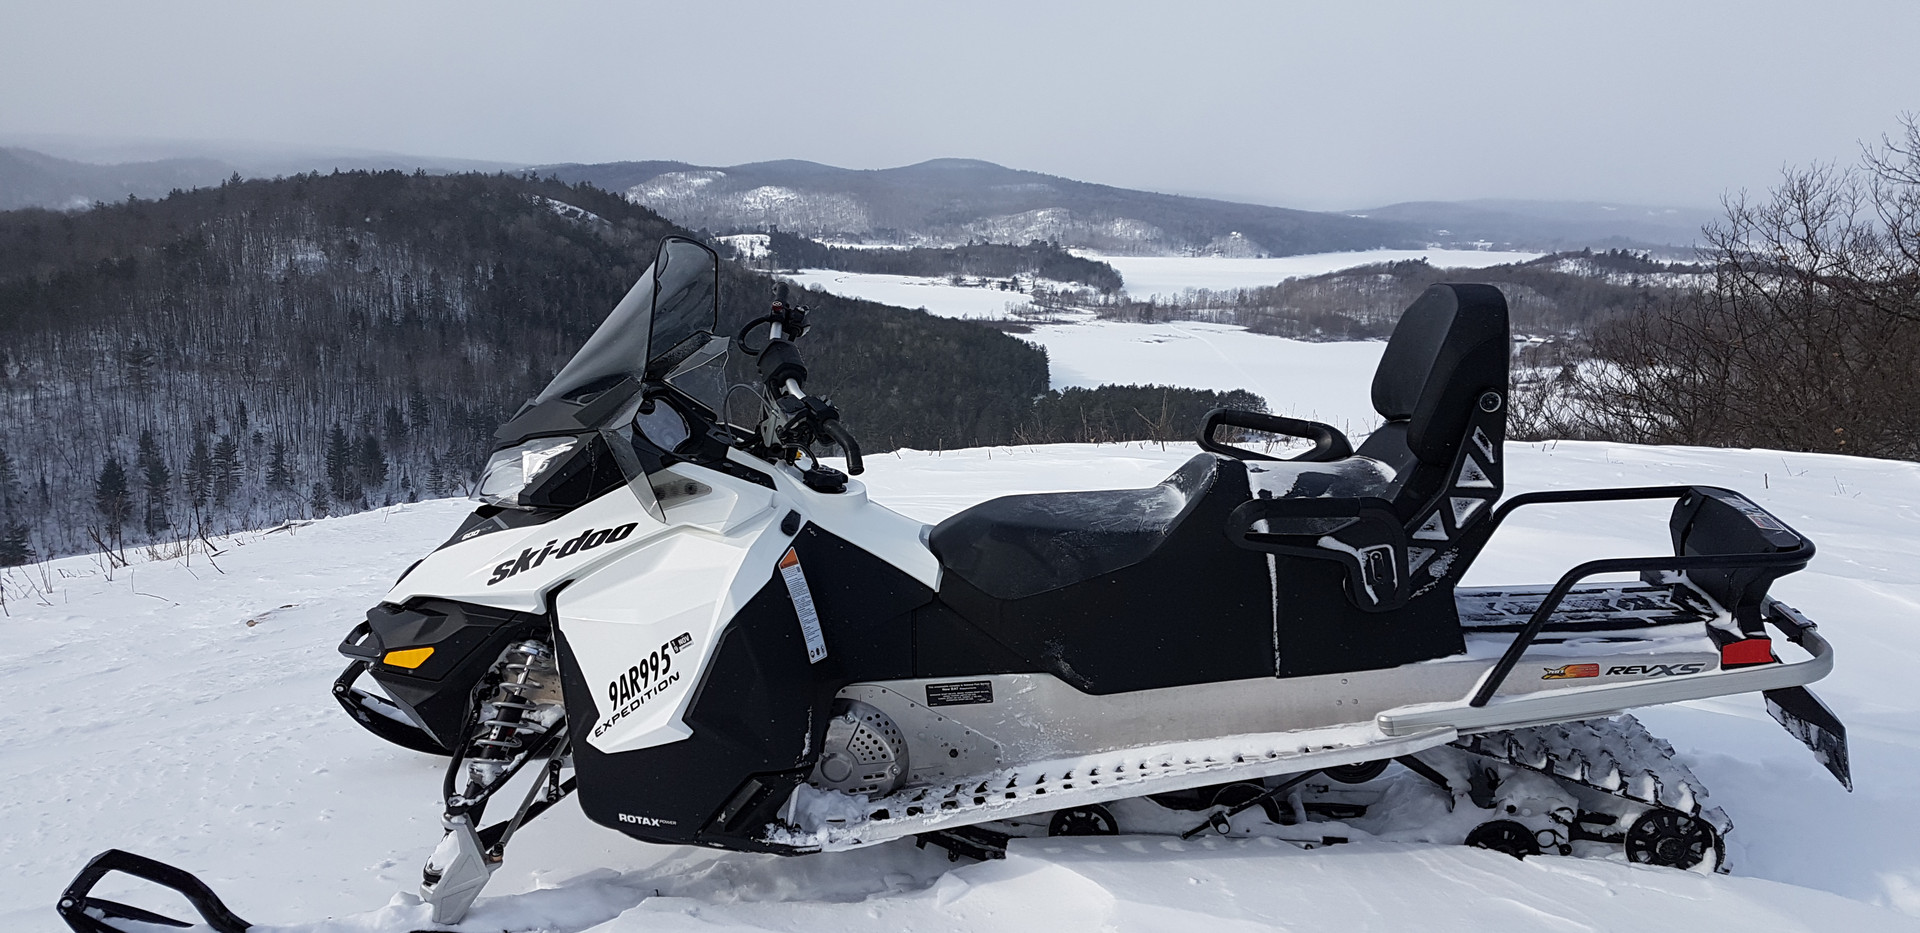 snowmobile ski-doo 600ace